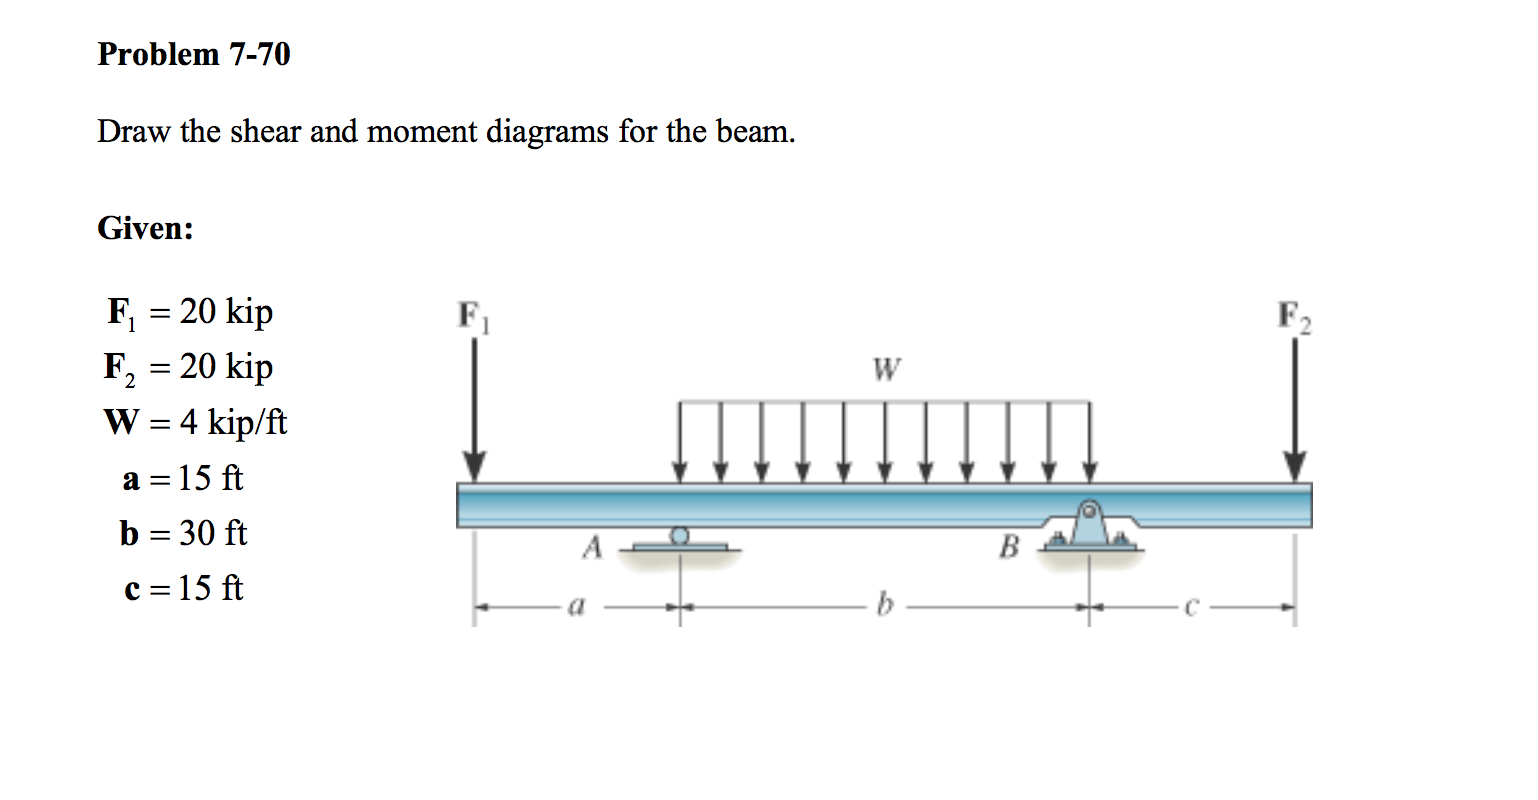 how to draw shear and bending moment diagrams what is the purpose of er diagram solved for beam g